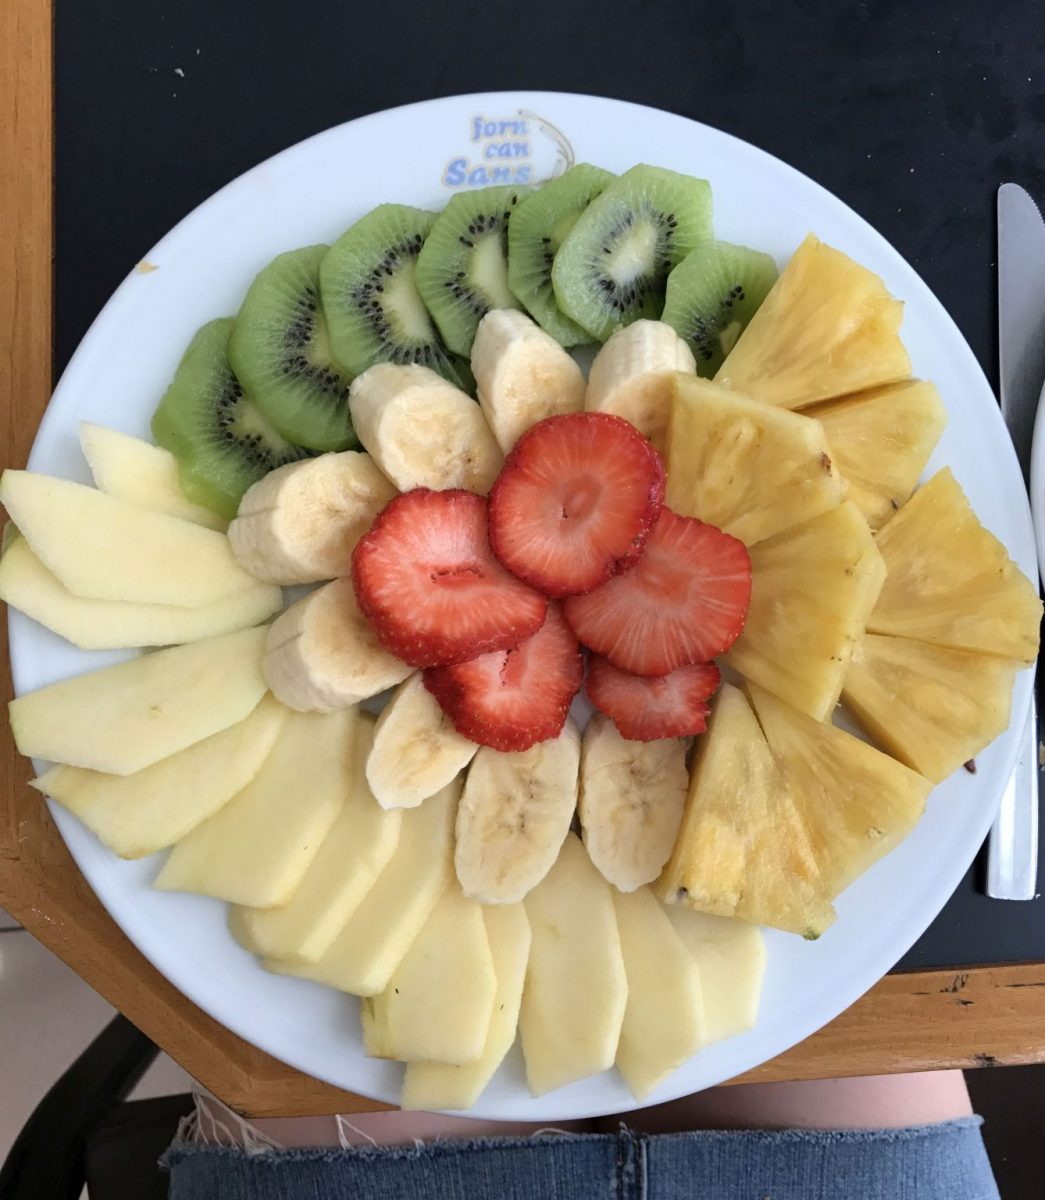 fruit - typical Cuban vegan breakfast